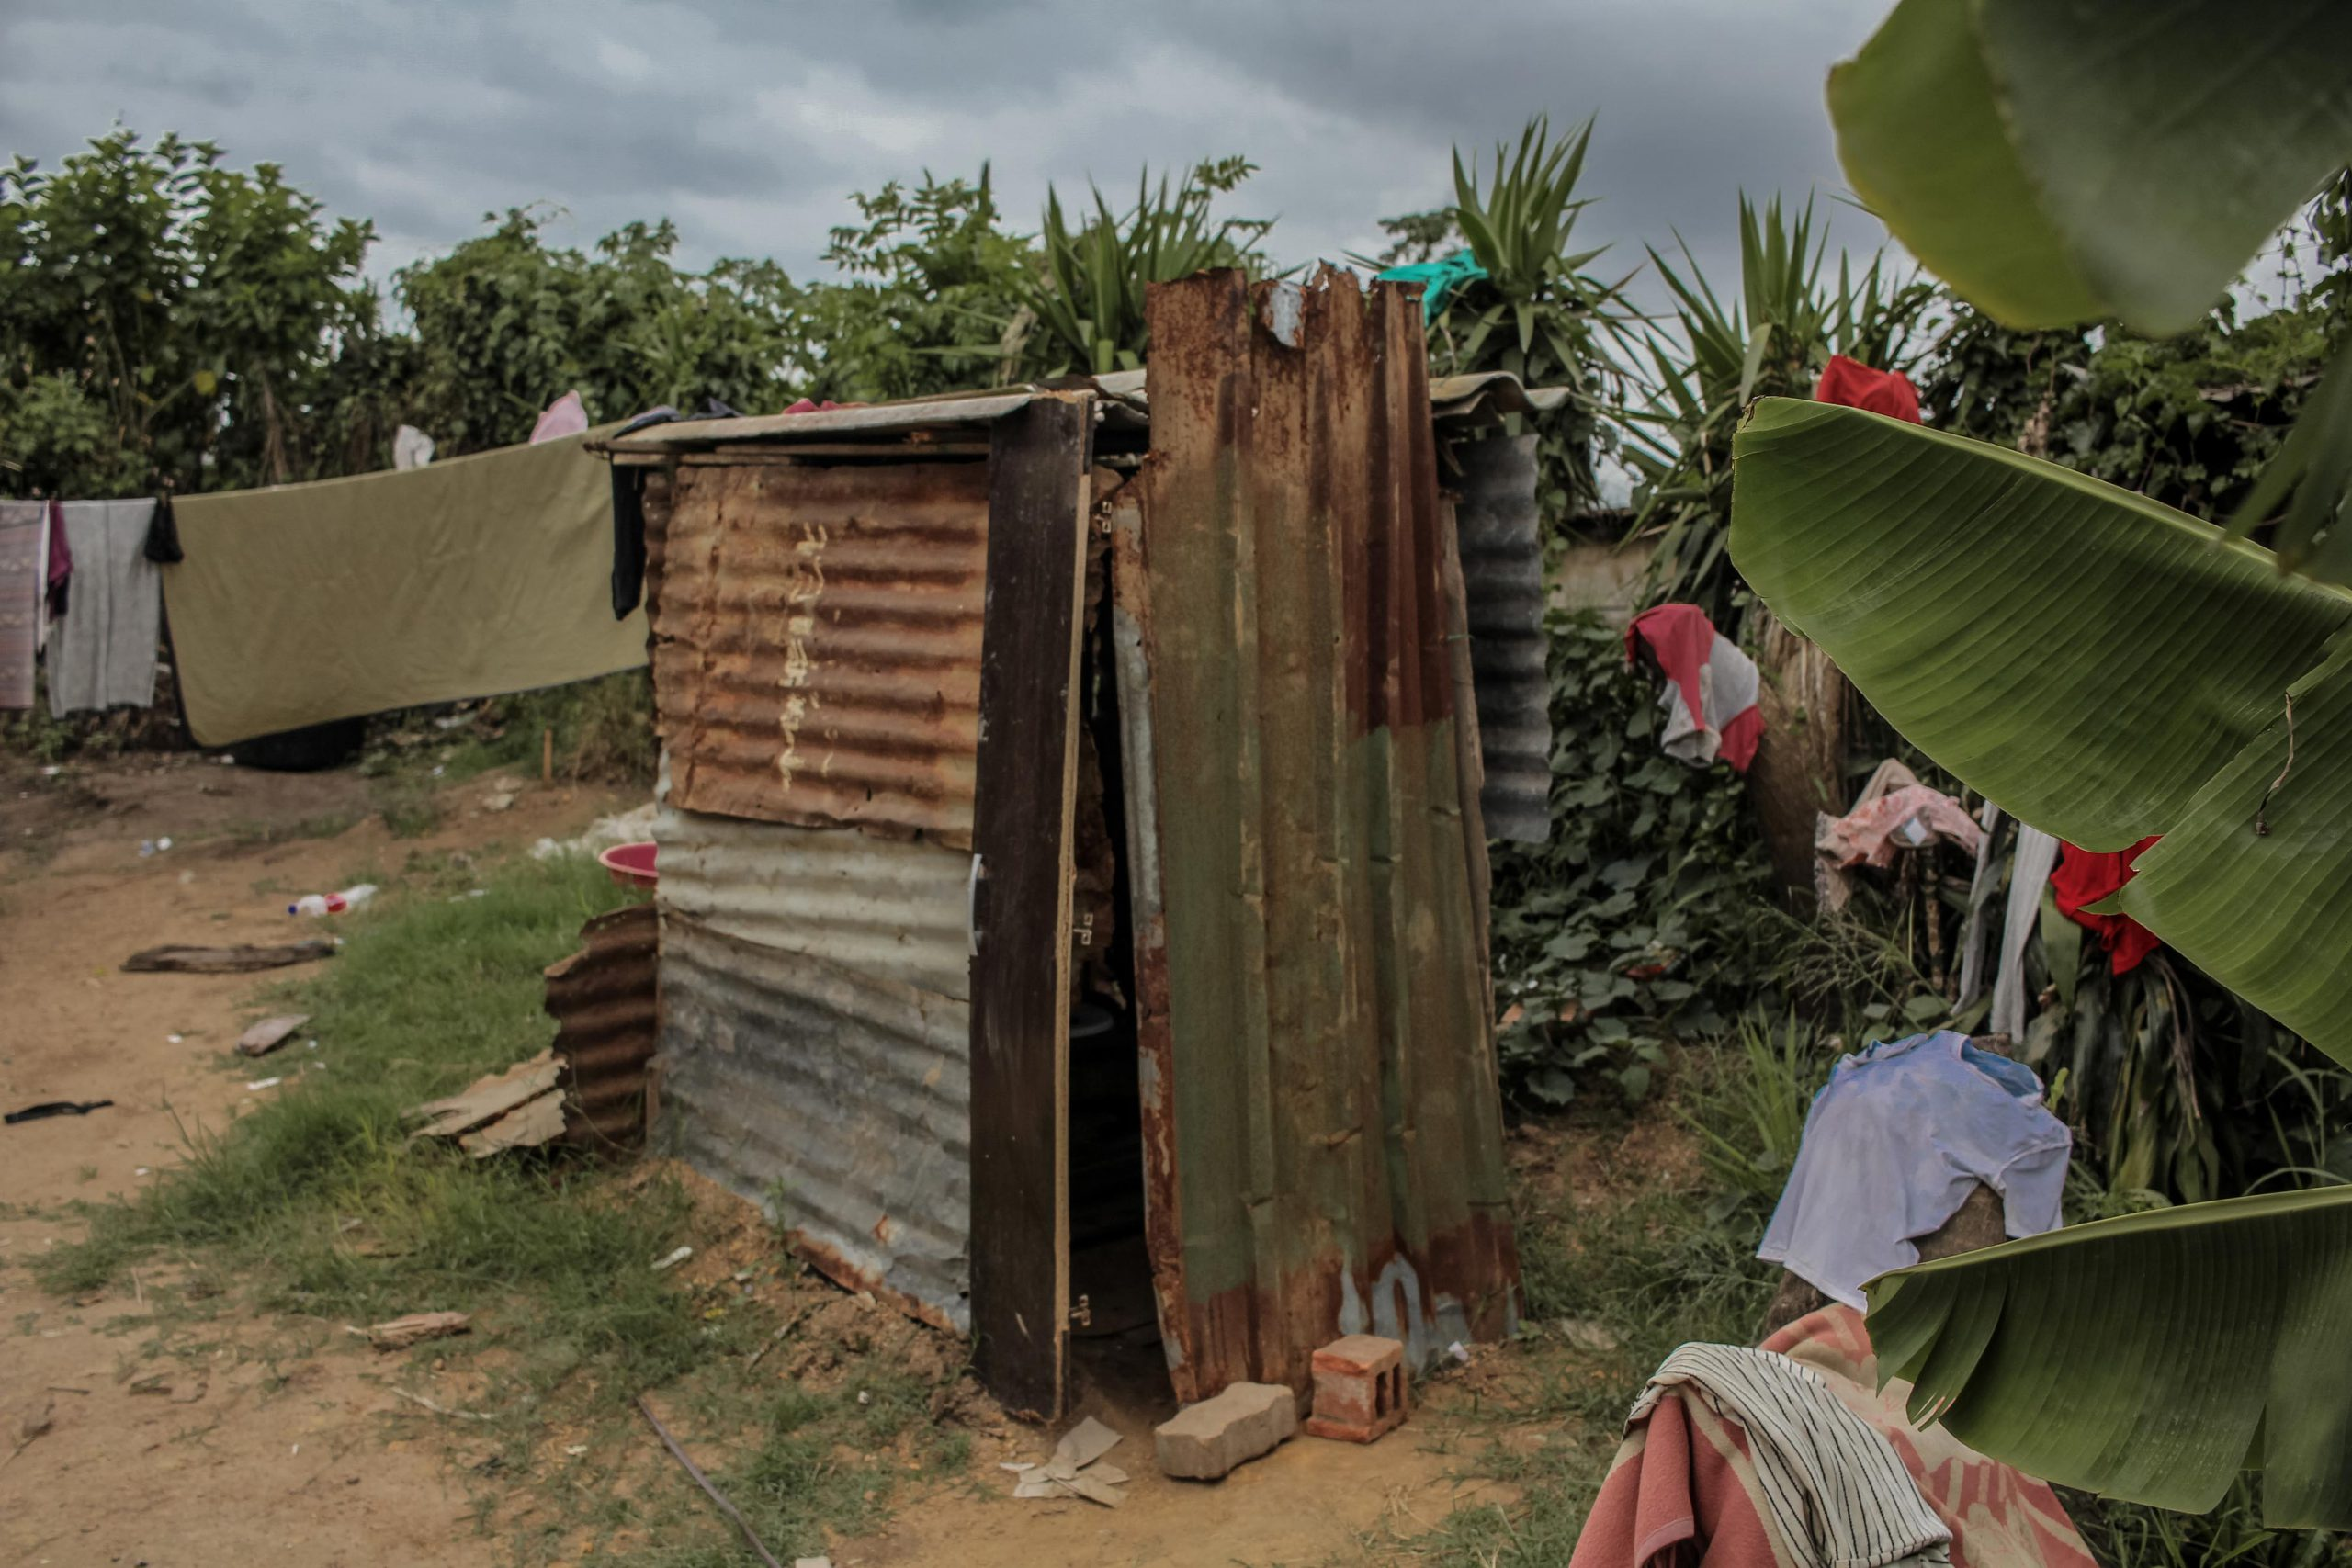 22 January 2020: Lindelani residents are still reliant on pit toilets.